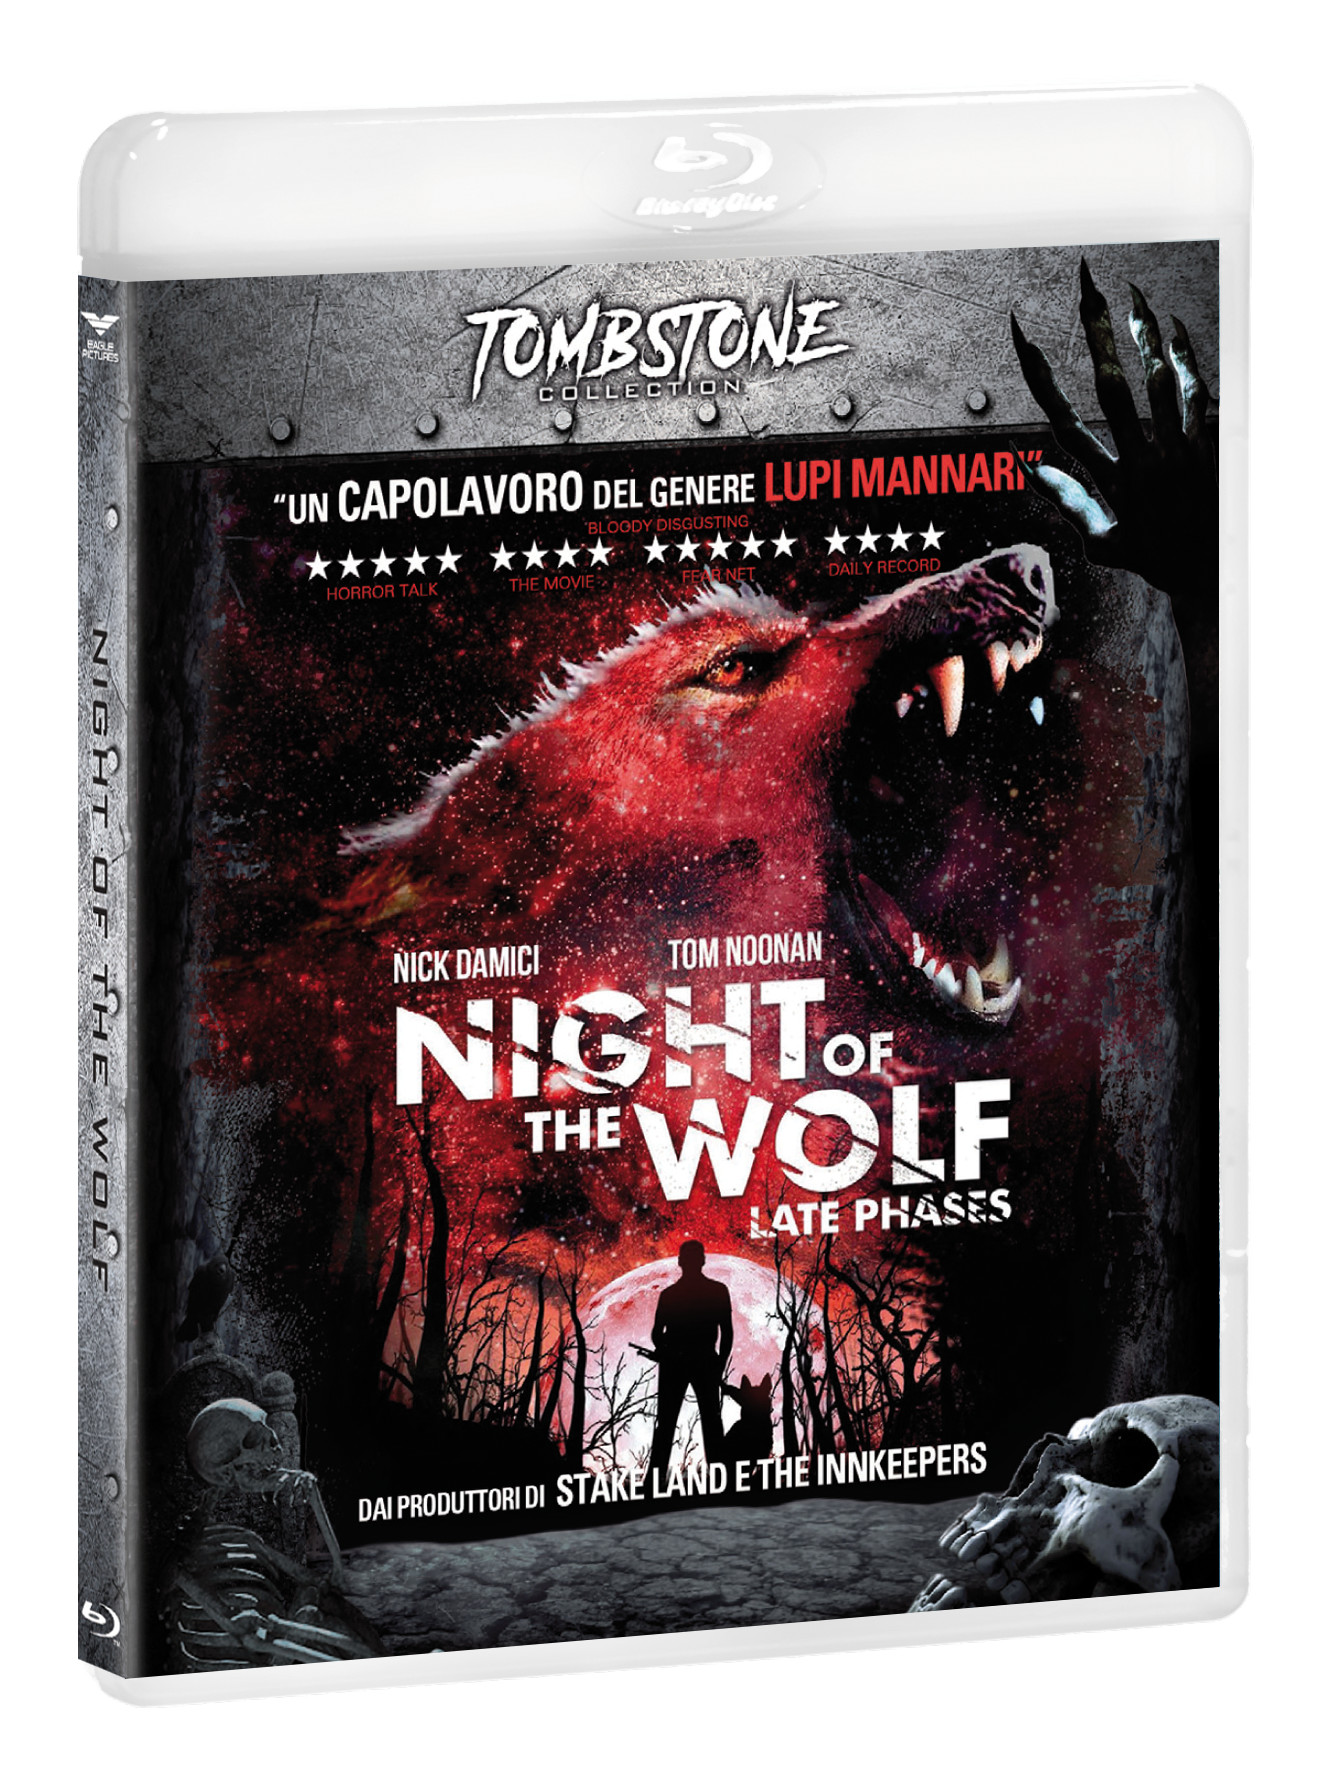 NIGHT OF THE WOLF (TOMBSTONE) - BLU RAY